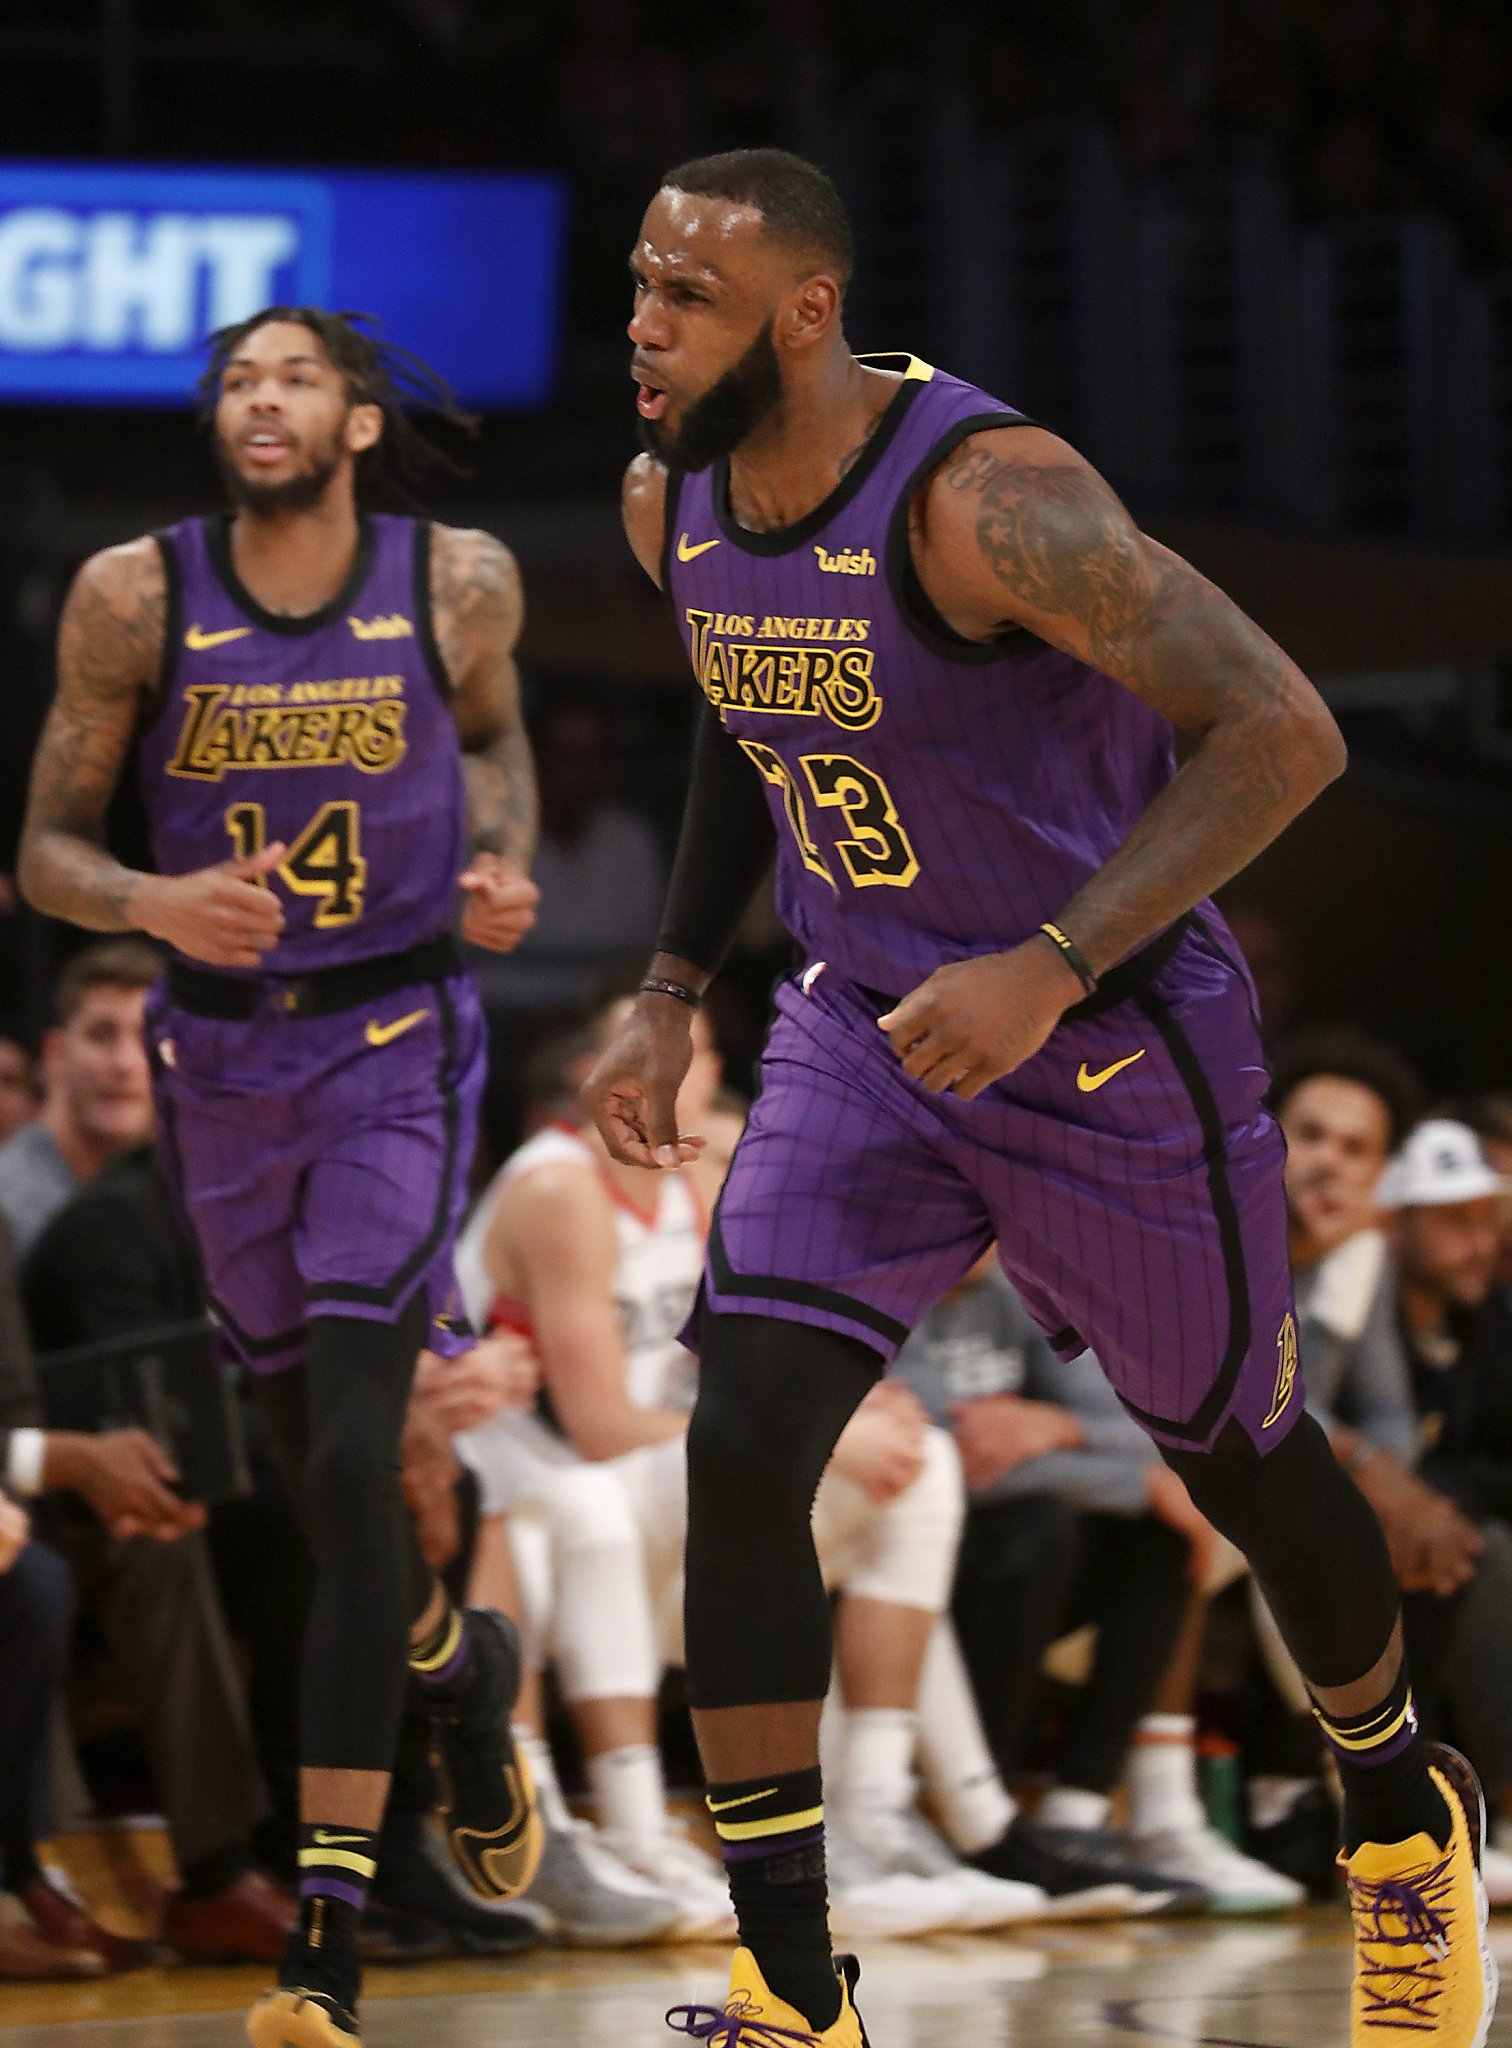 on sale b00b0 284cc LeBron James scores season-high 44 to lead Lakers over Trail Blazers -  SFGate